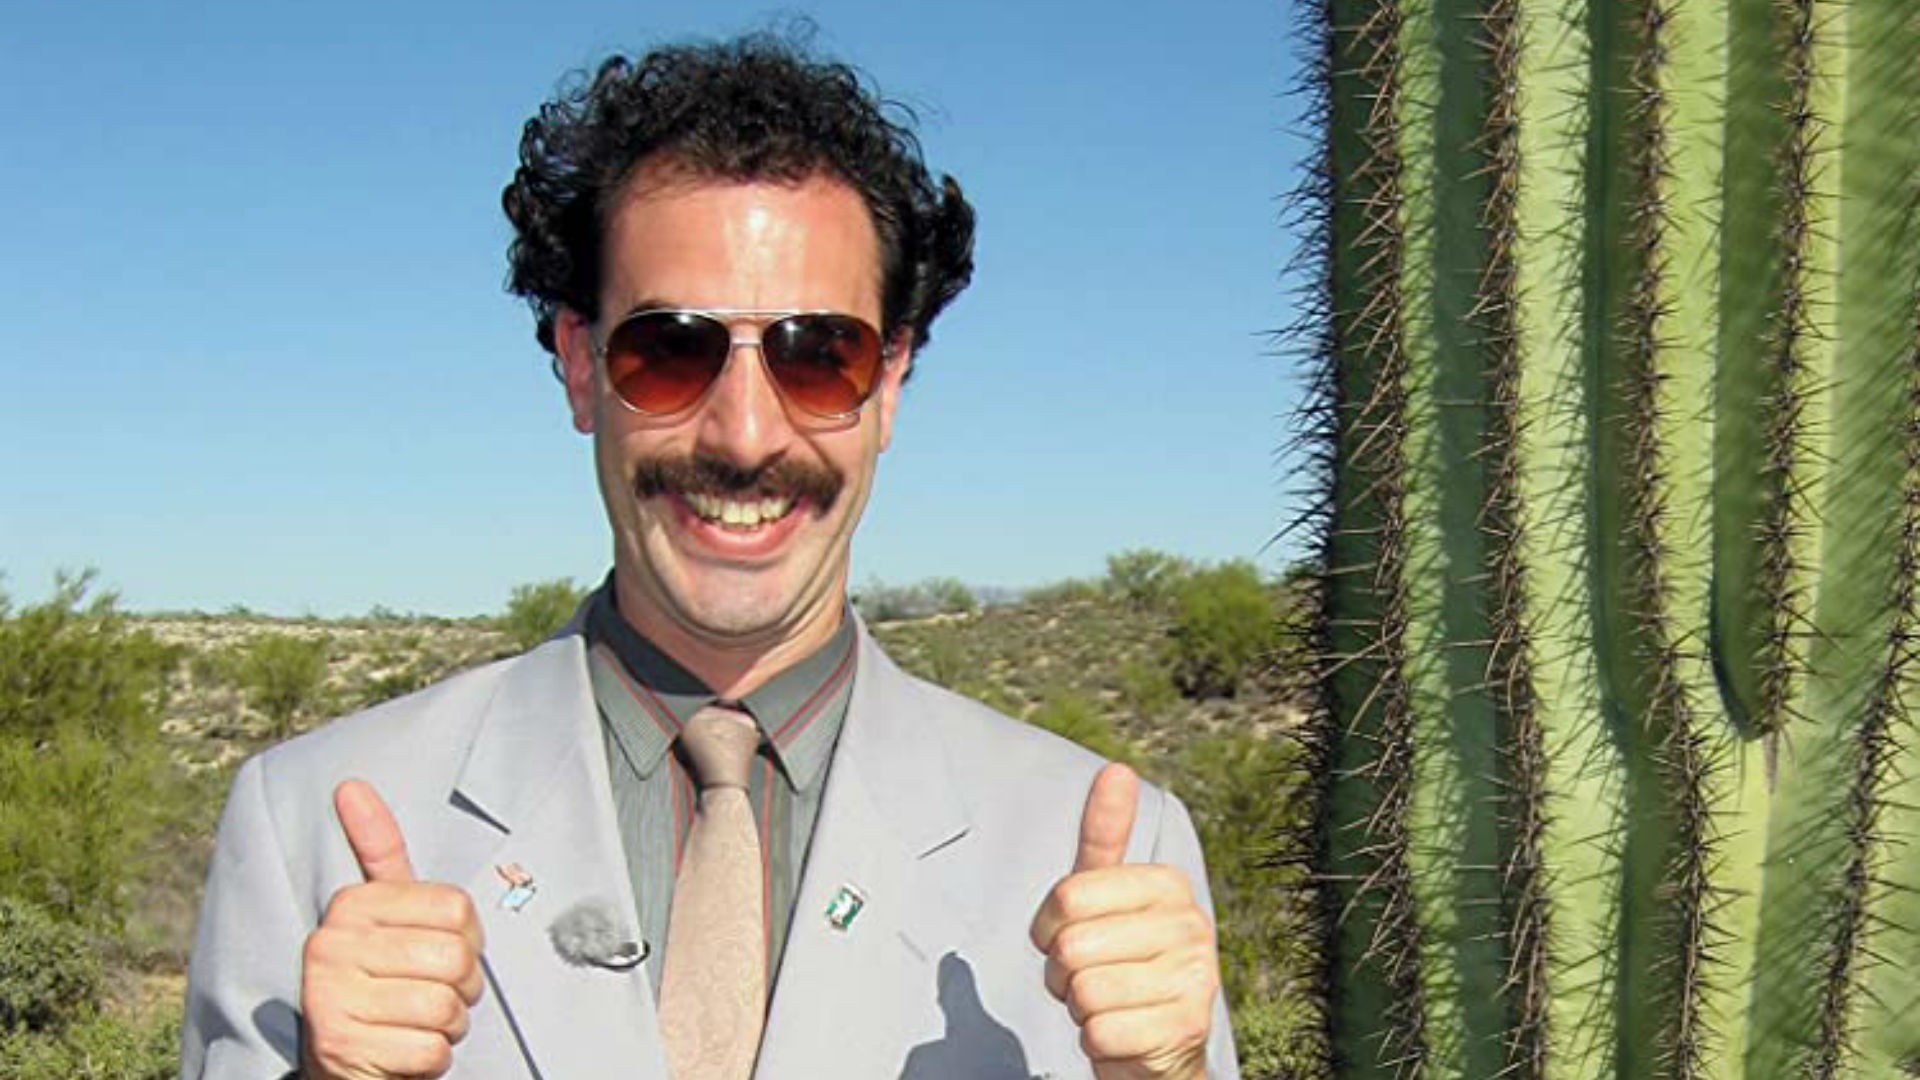 Borat: Subsequent Moviefilm Trailer: The Gift That Keeps on Giving